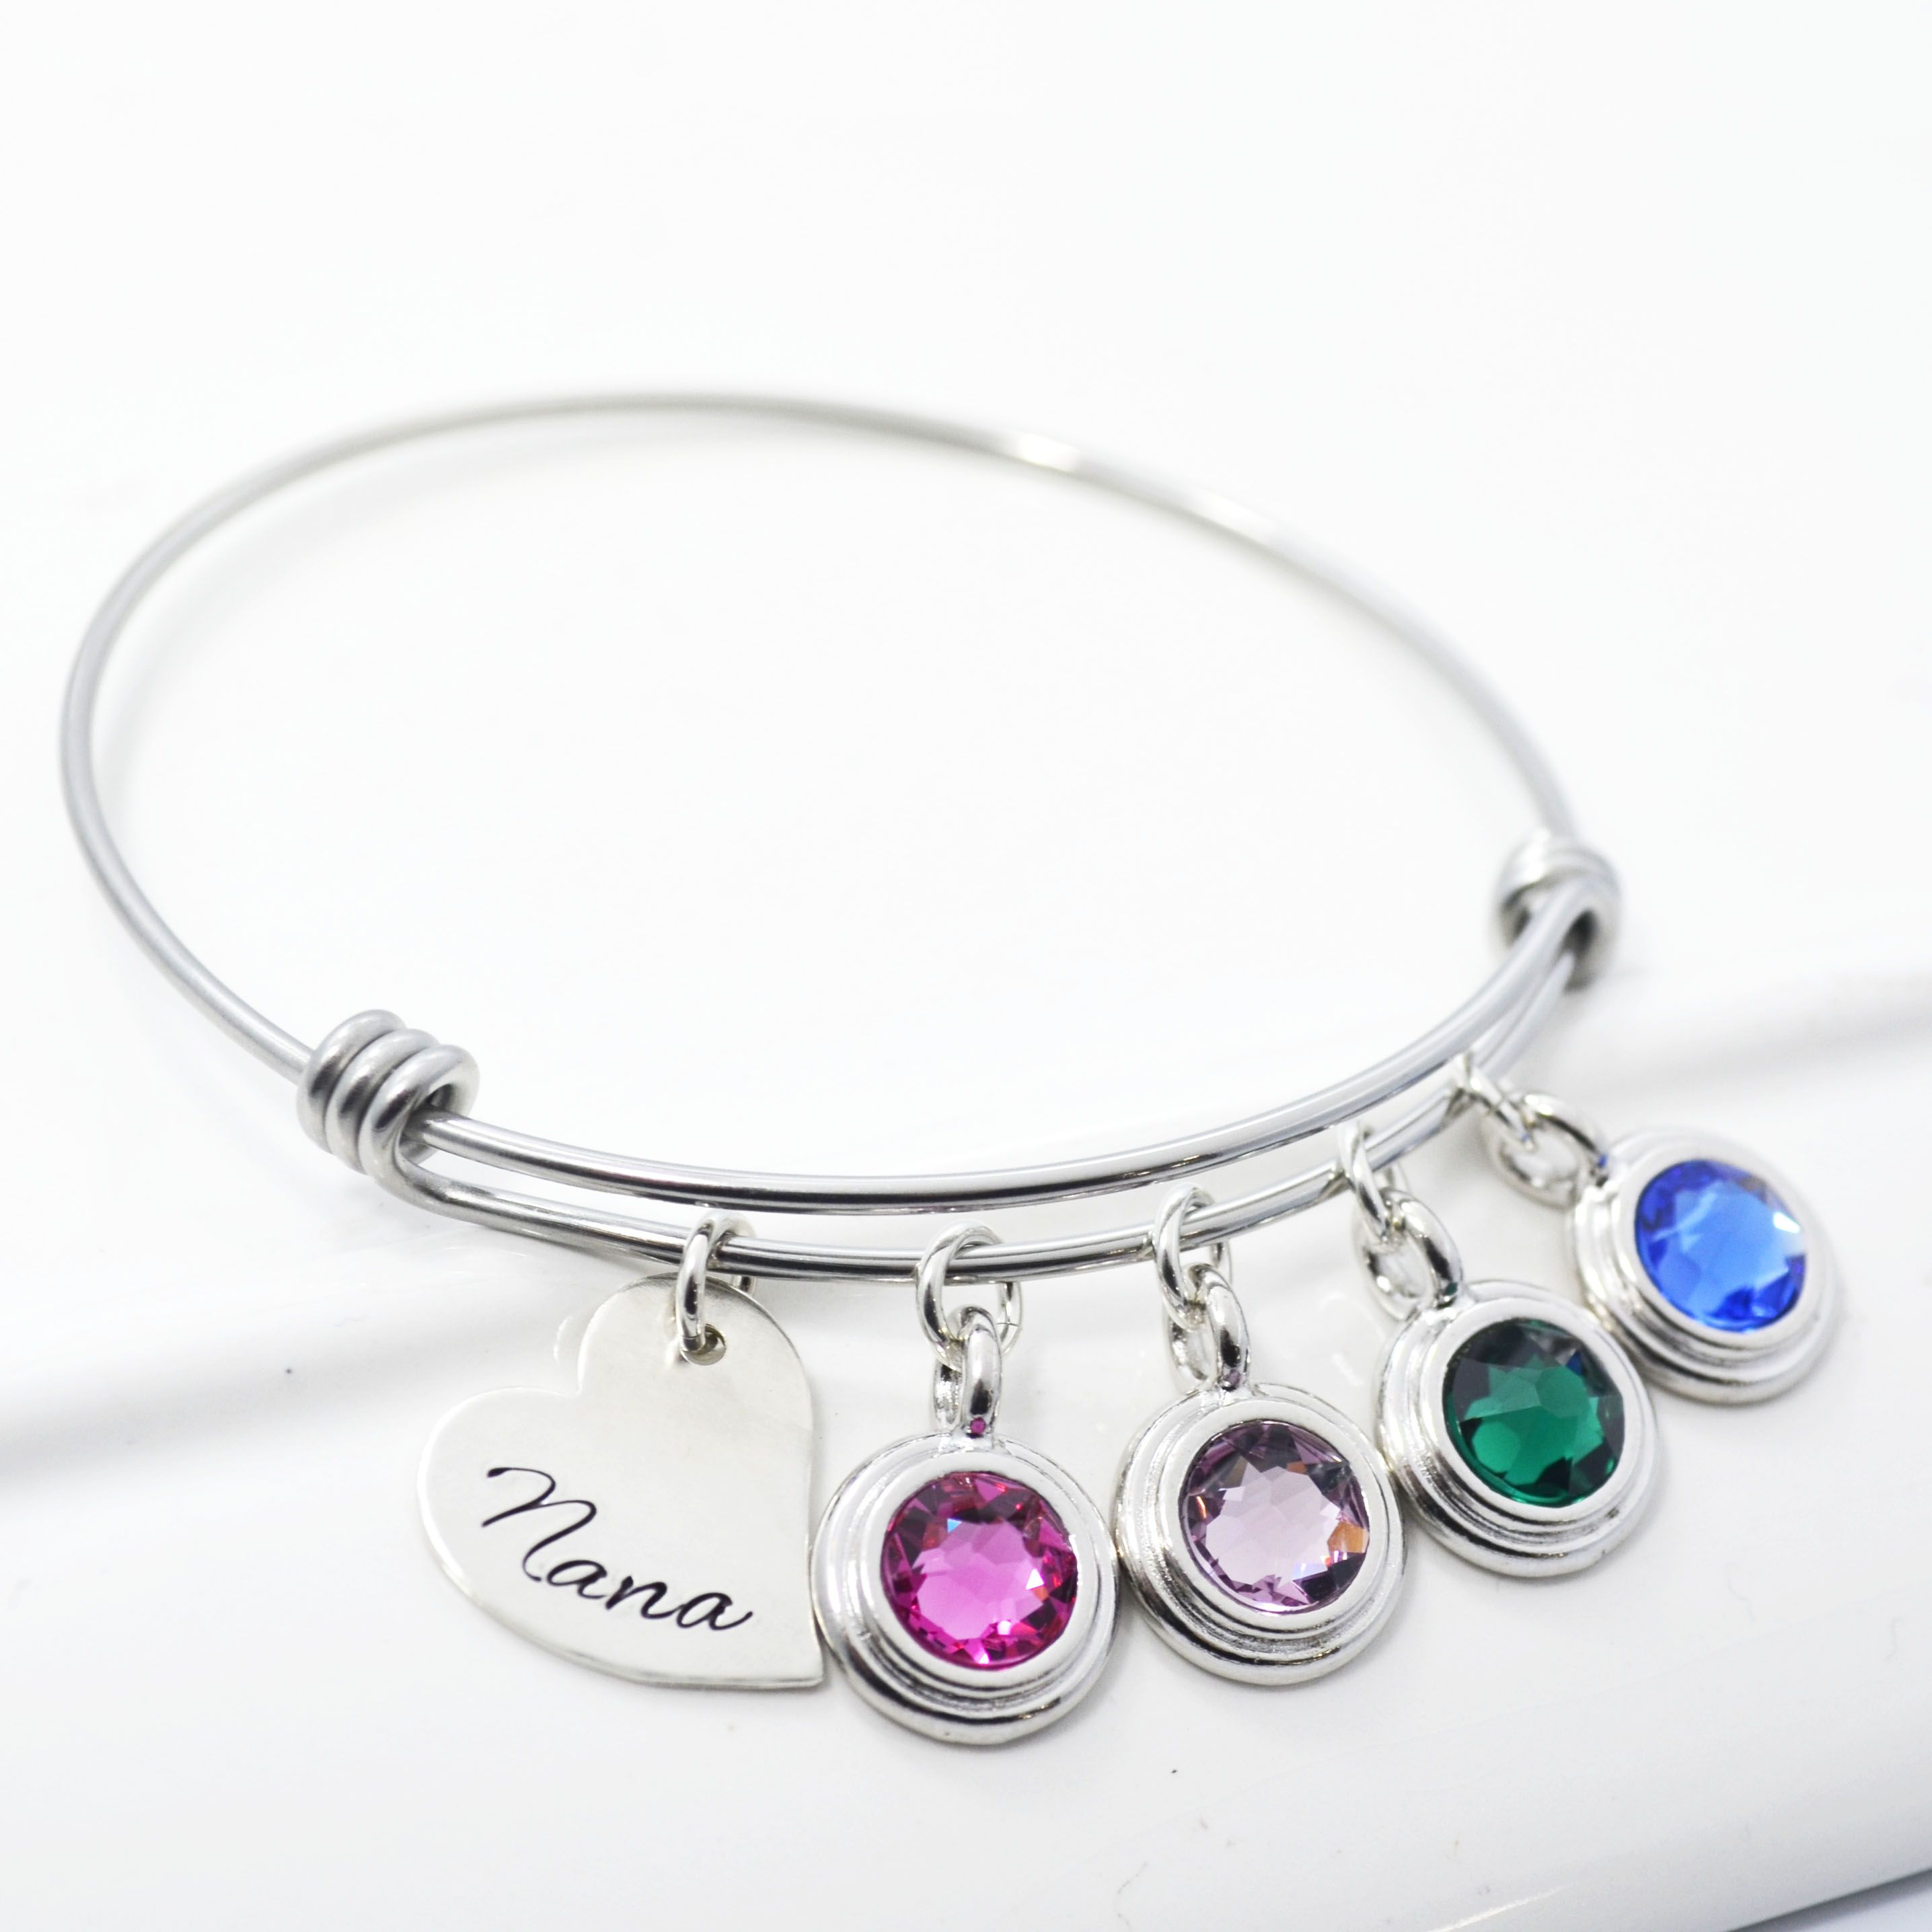 set estore birthstone droplet gift pandora january uk en bracelet